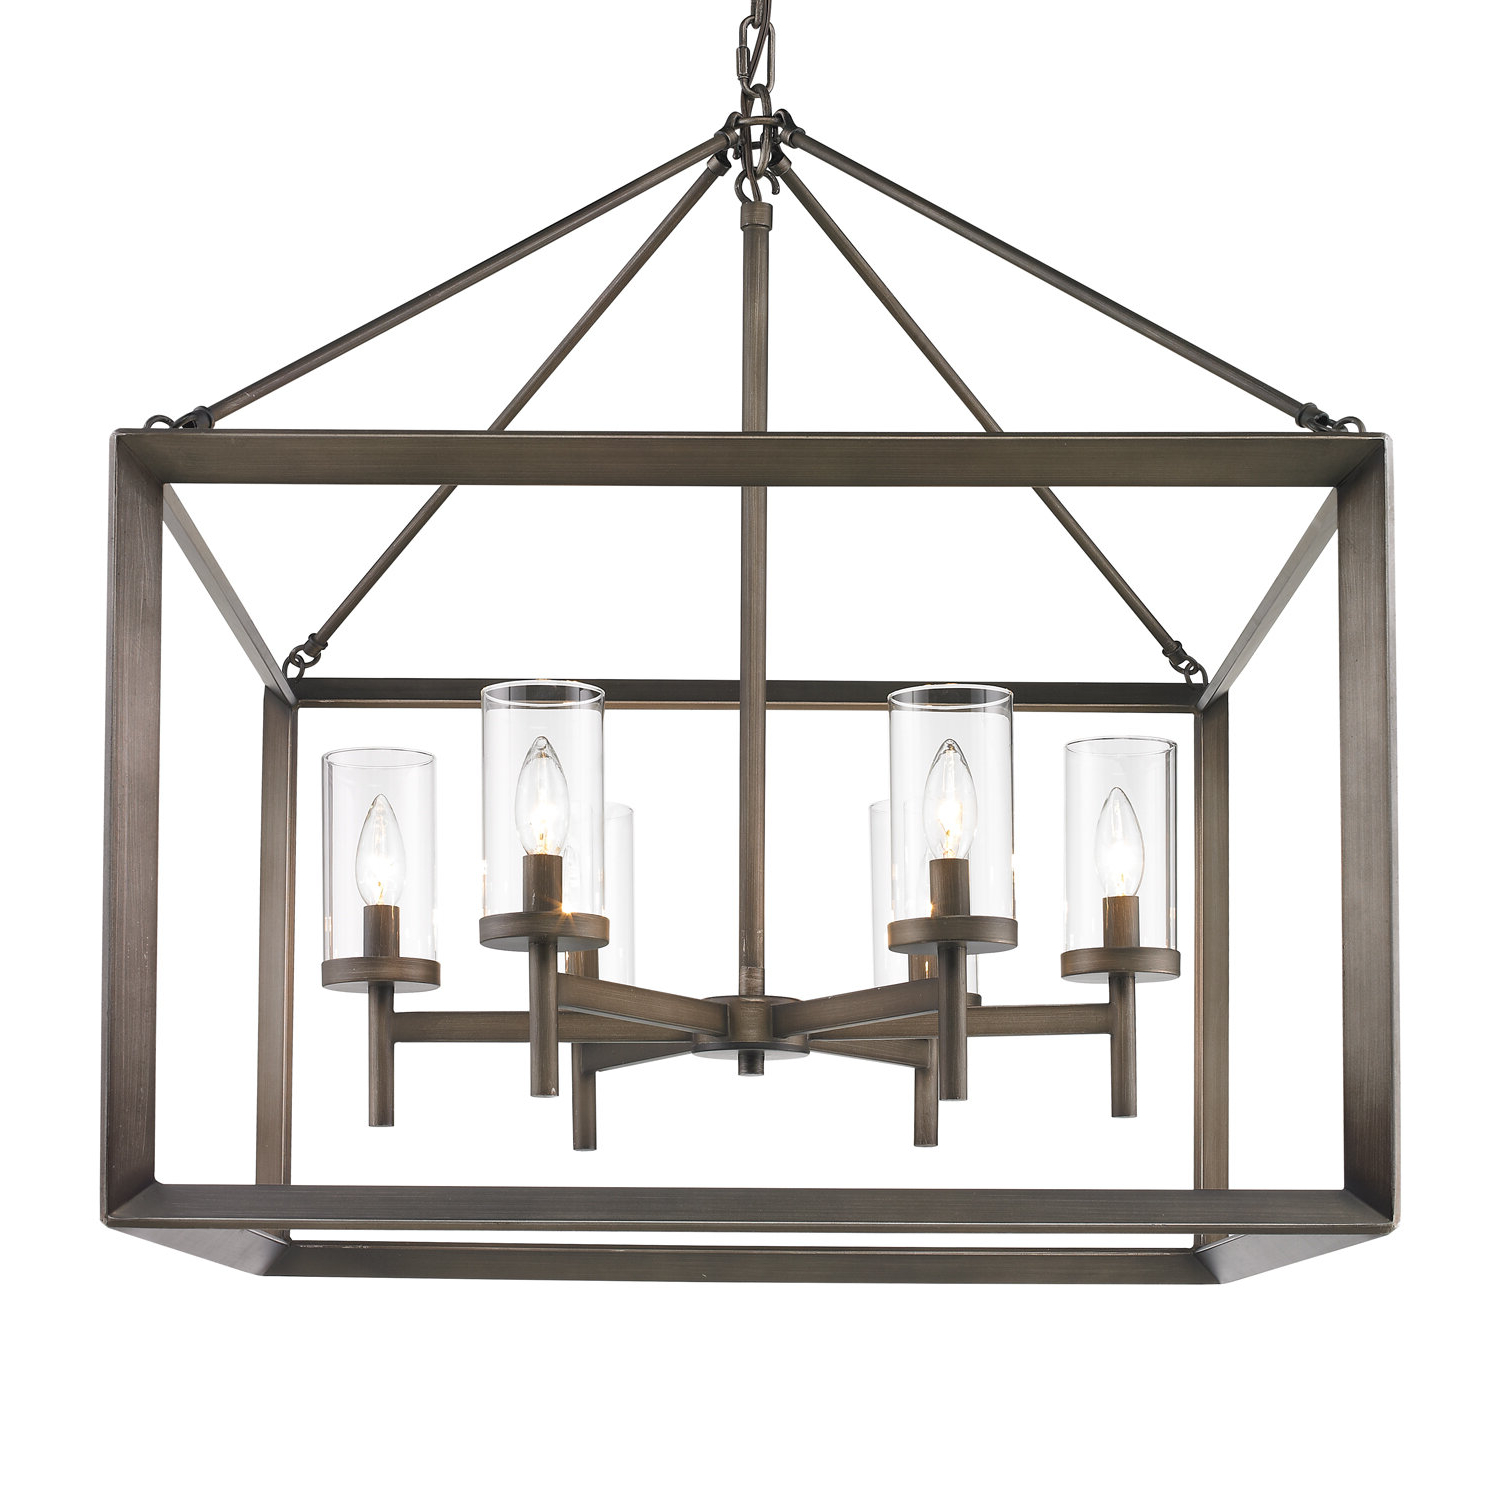 Thorne 4 Light Lantern Rectangle Pendants With Preferred Thorne 6 Light Lantern Square / Rectangle Pendant (View 15 of 20)